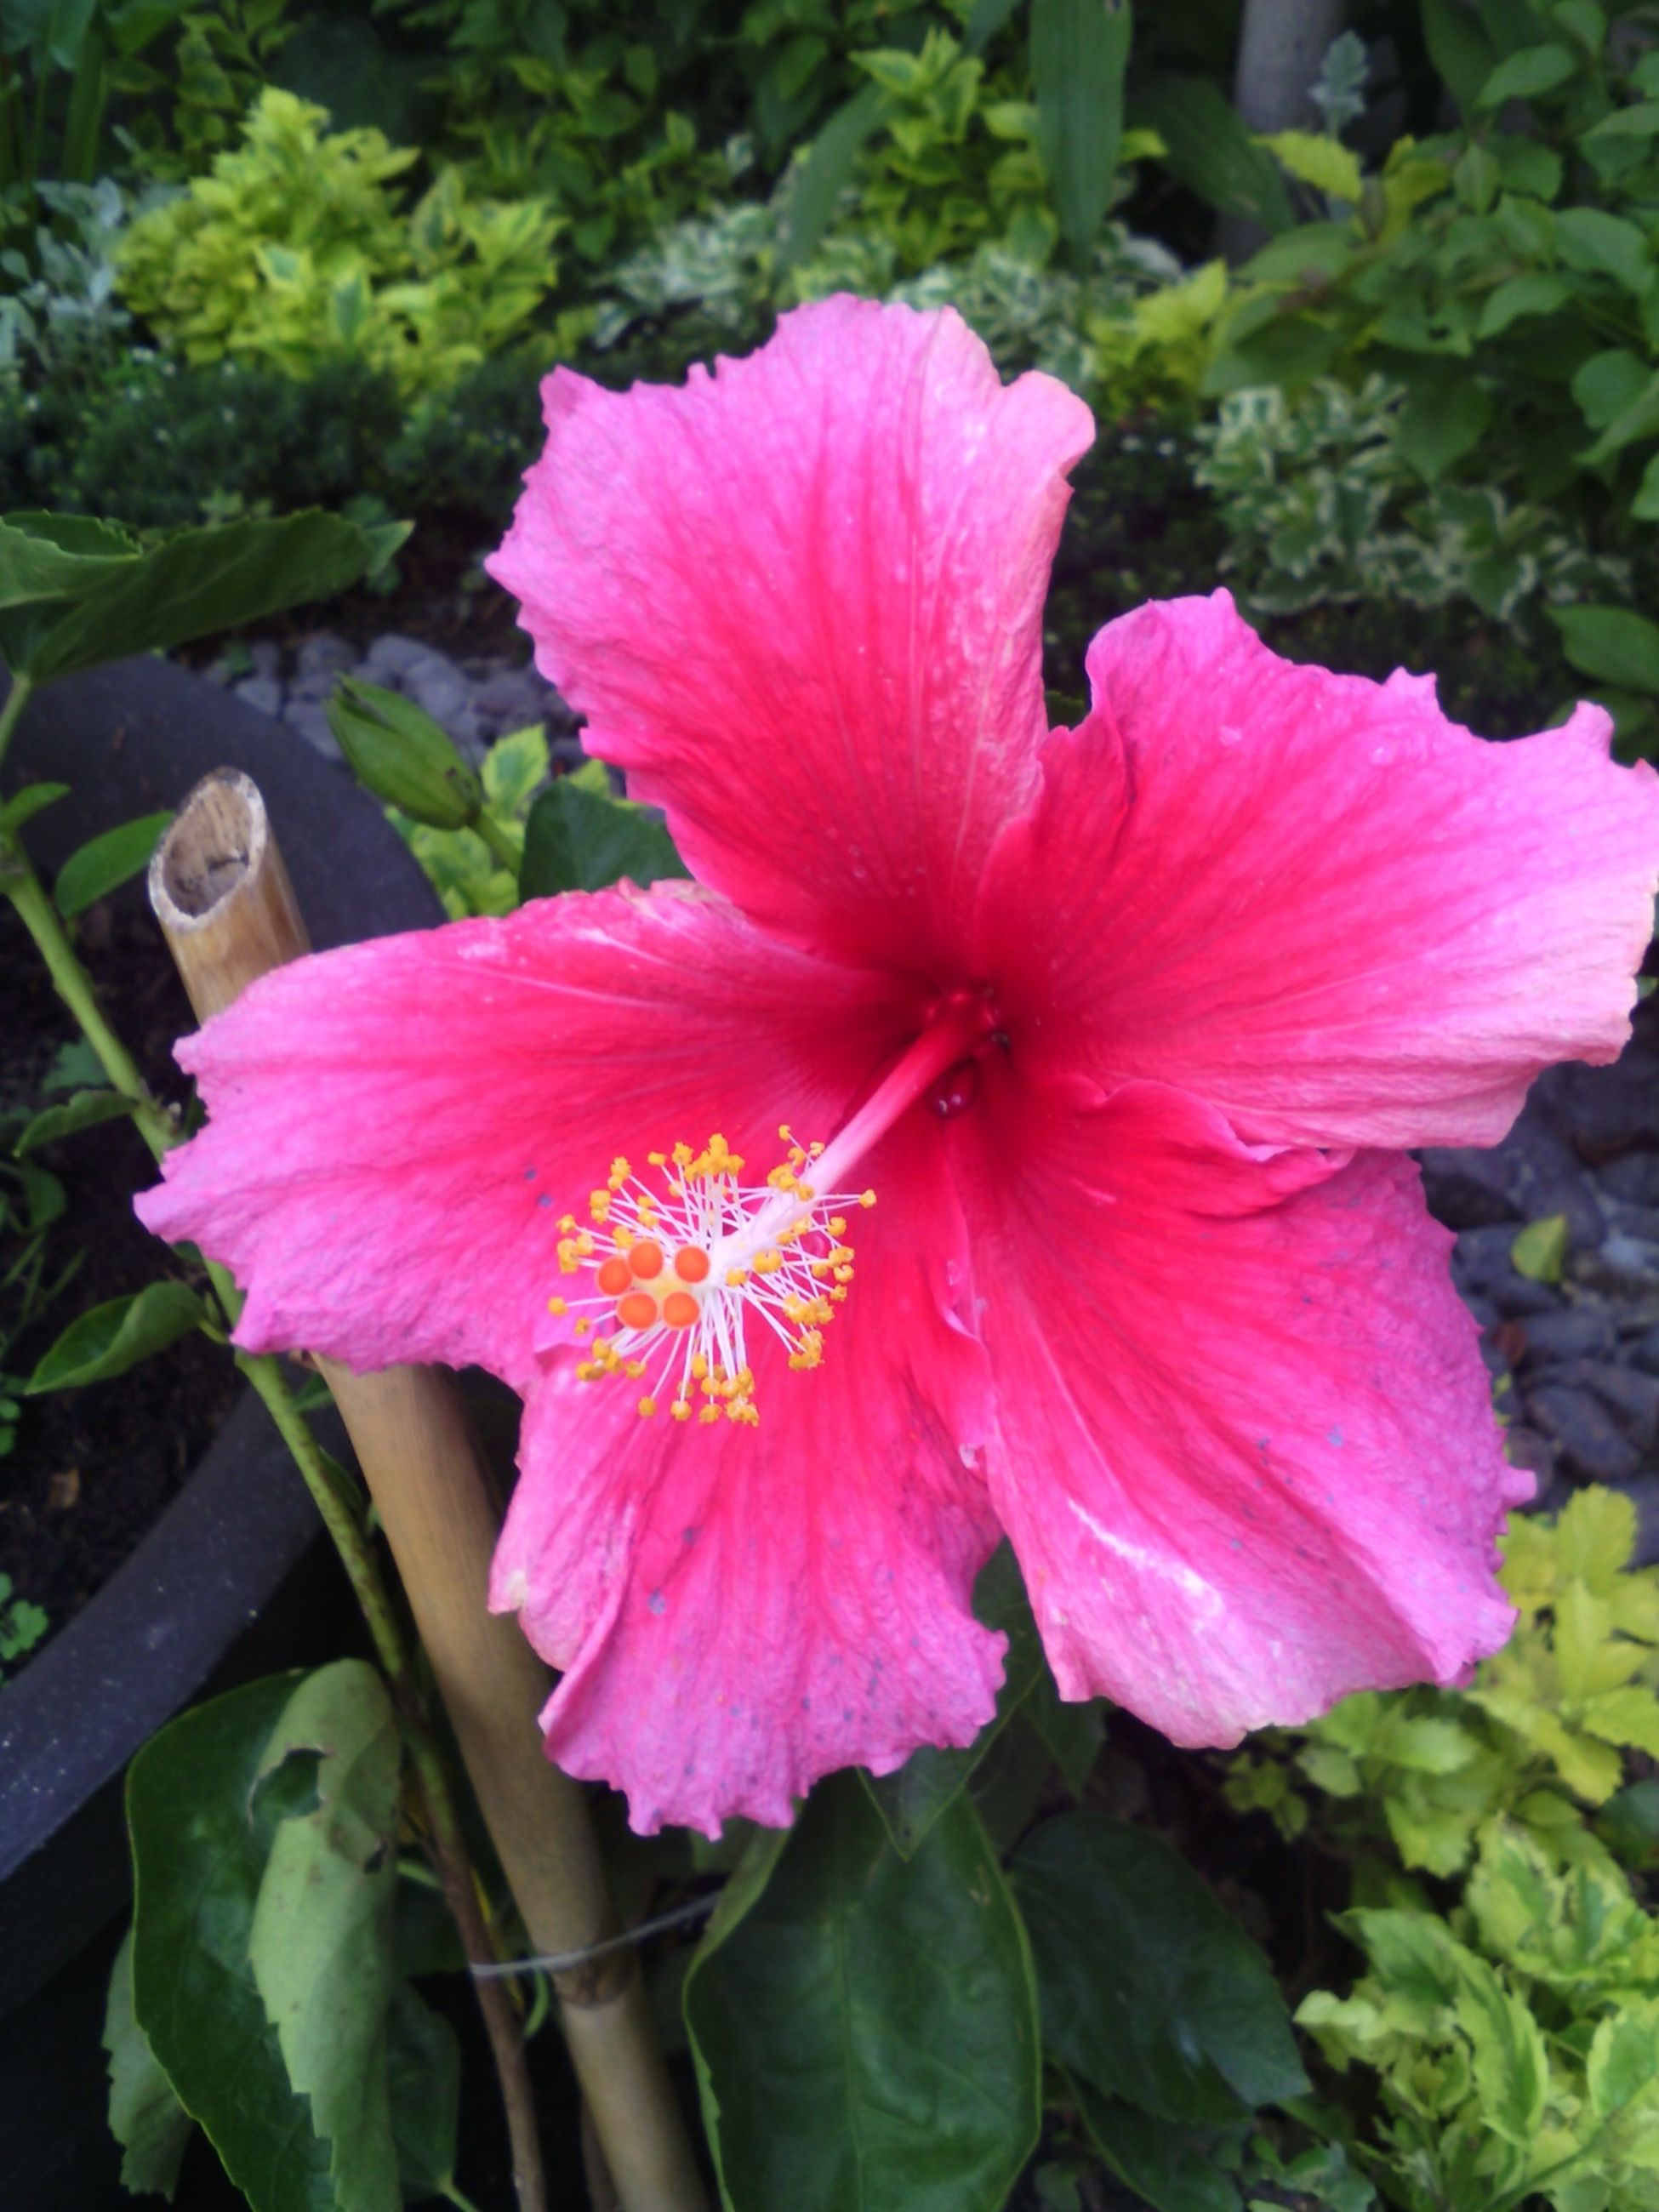 flower, petal, freshness, flower head, fragility, growth, beauty in nature, pink color, blooming, close-up, plant, nature, single flower, hibiscus, leaf, focus on foreground, stamen, pollen, in bloom, high angle view